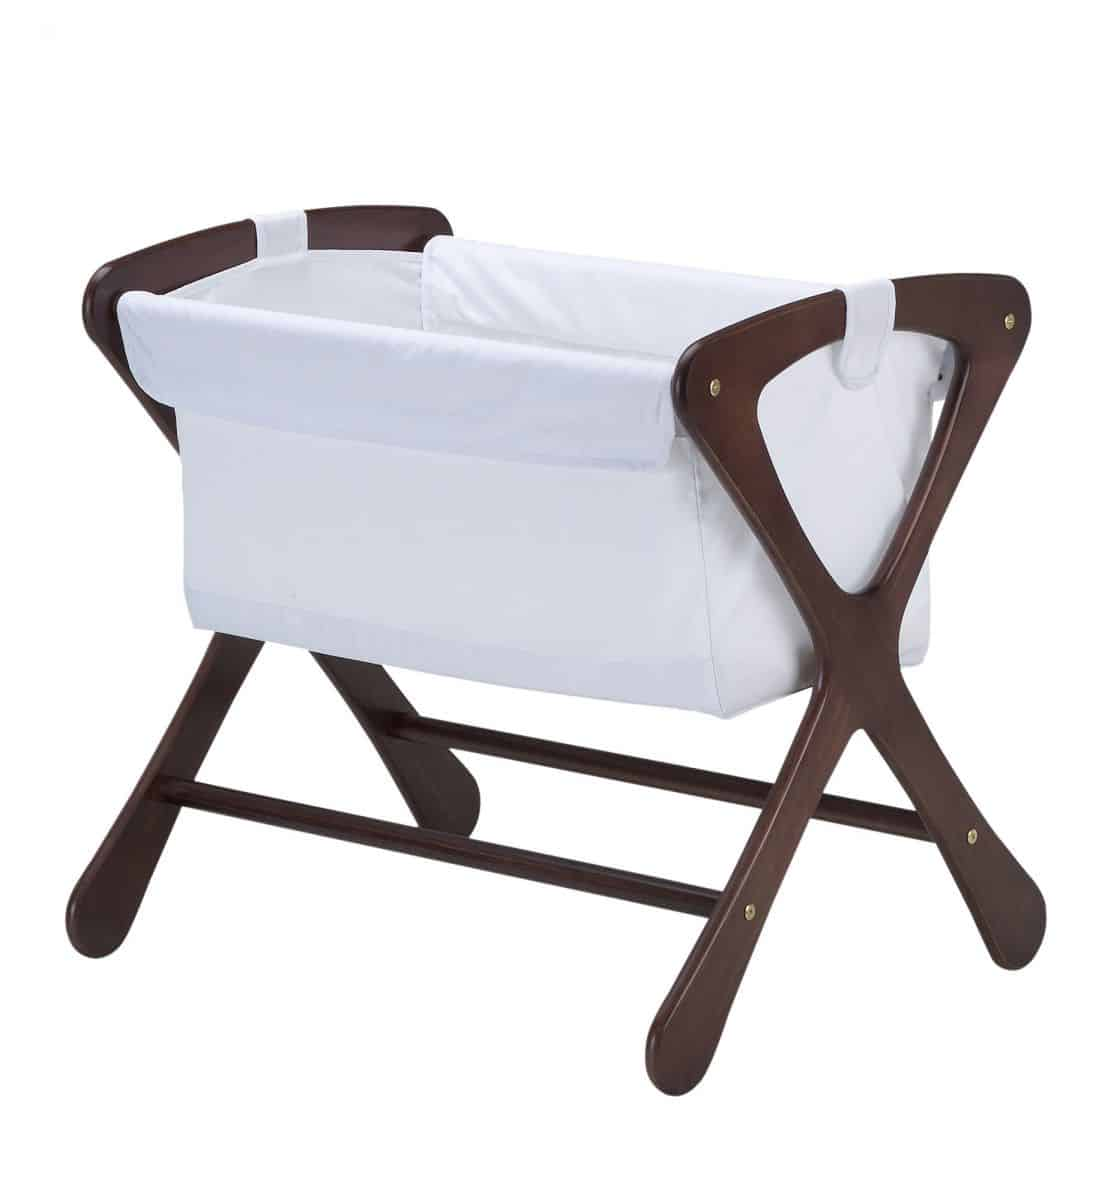 hello wonderful   modern baby bassinets - cariboo bassinet  made of new zealand timber with modern curveddesigns in four different classsic finishes that will fit into anycontemporary home